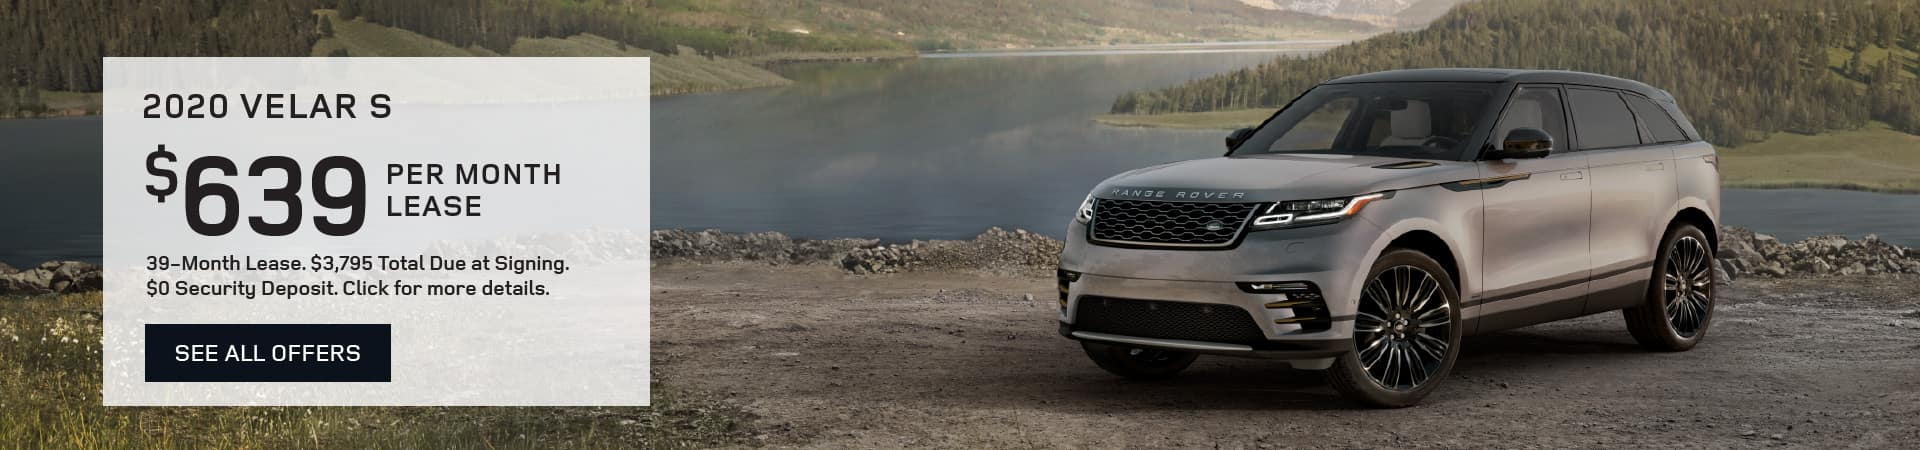 Autobahn Land Rover Fort Worth Lease Special - Velar S $639